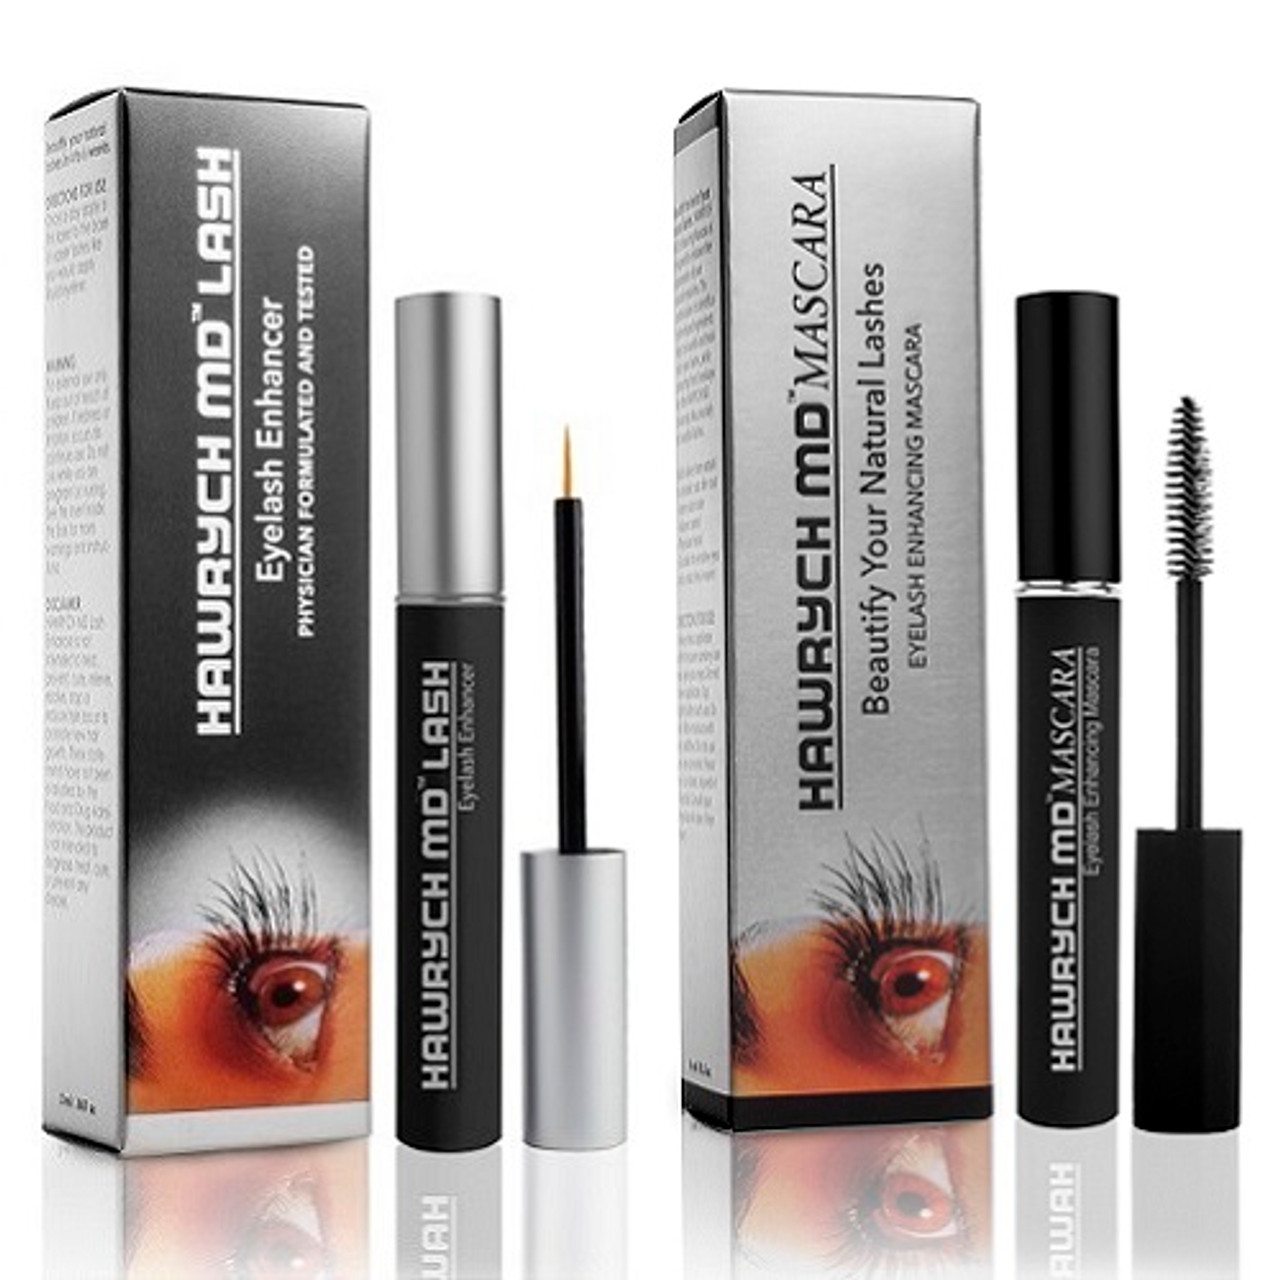 47ce8c5c508 HAWRYCH MD Eyelash Enhancer and Enhancing Mascara Set - HAWRYCH MD ...